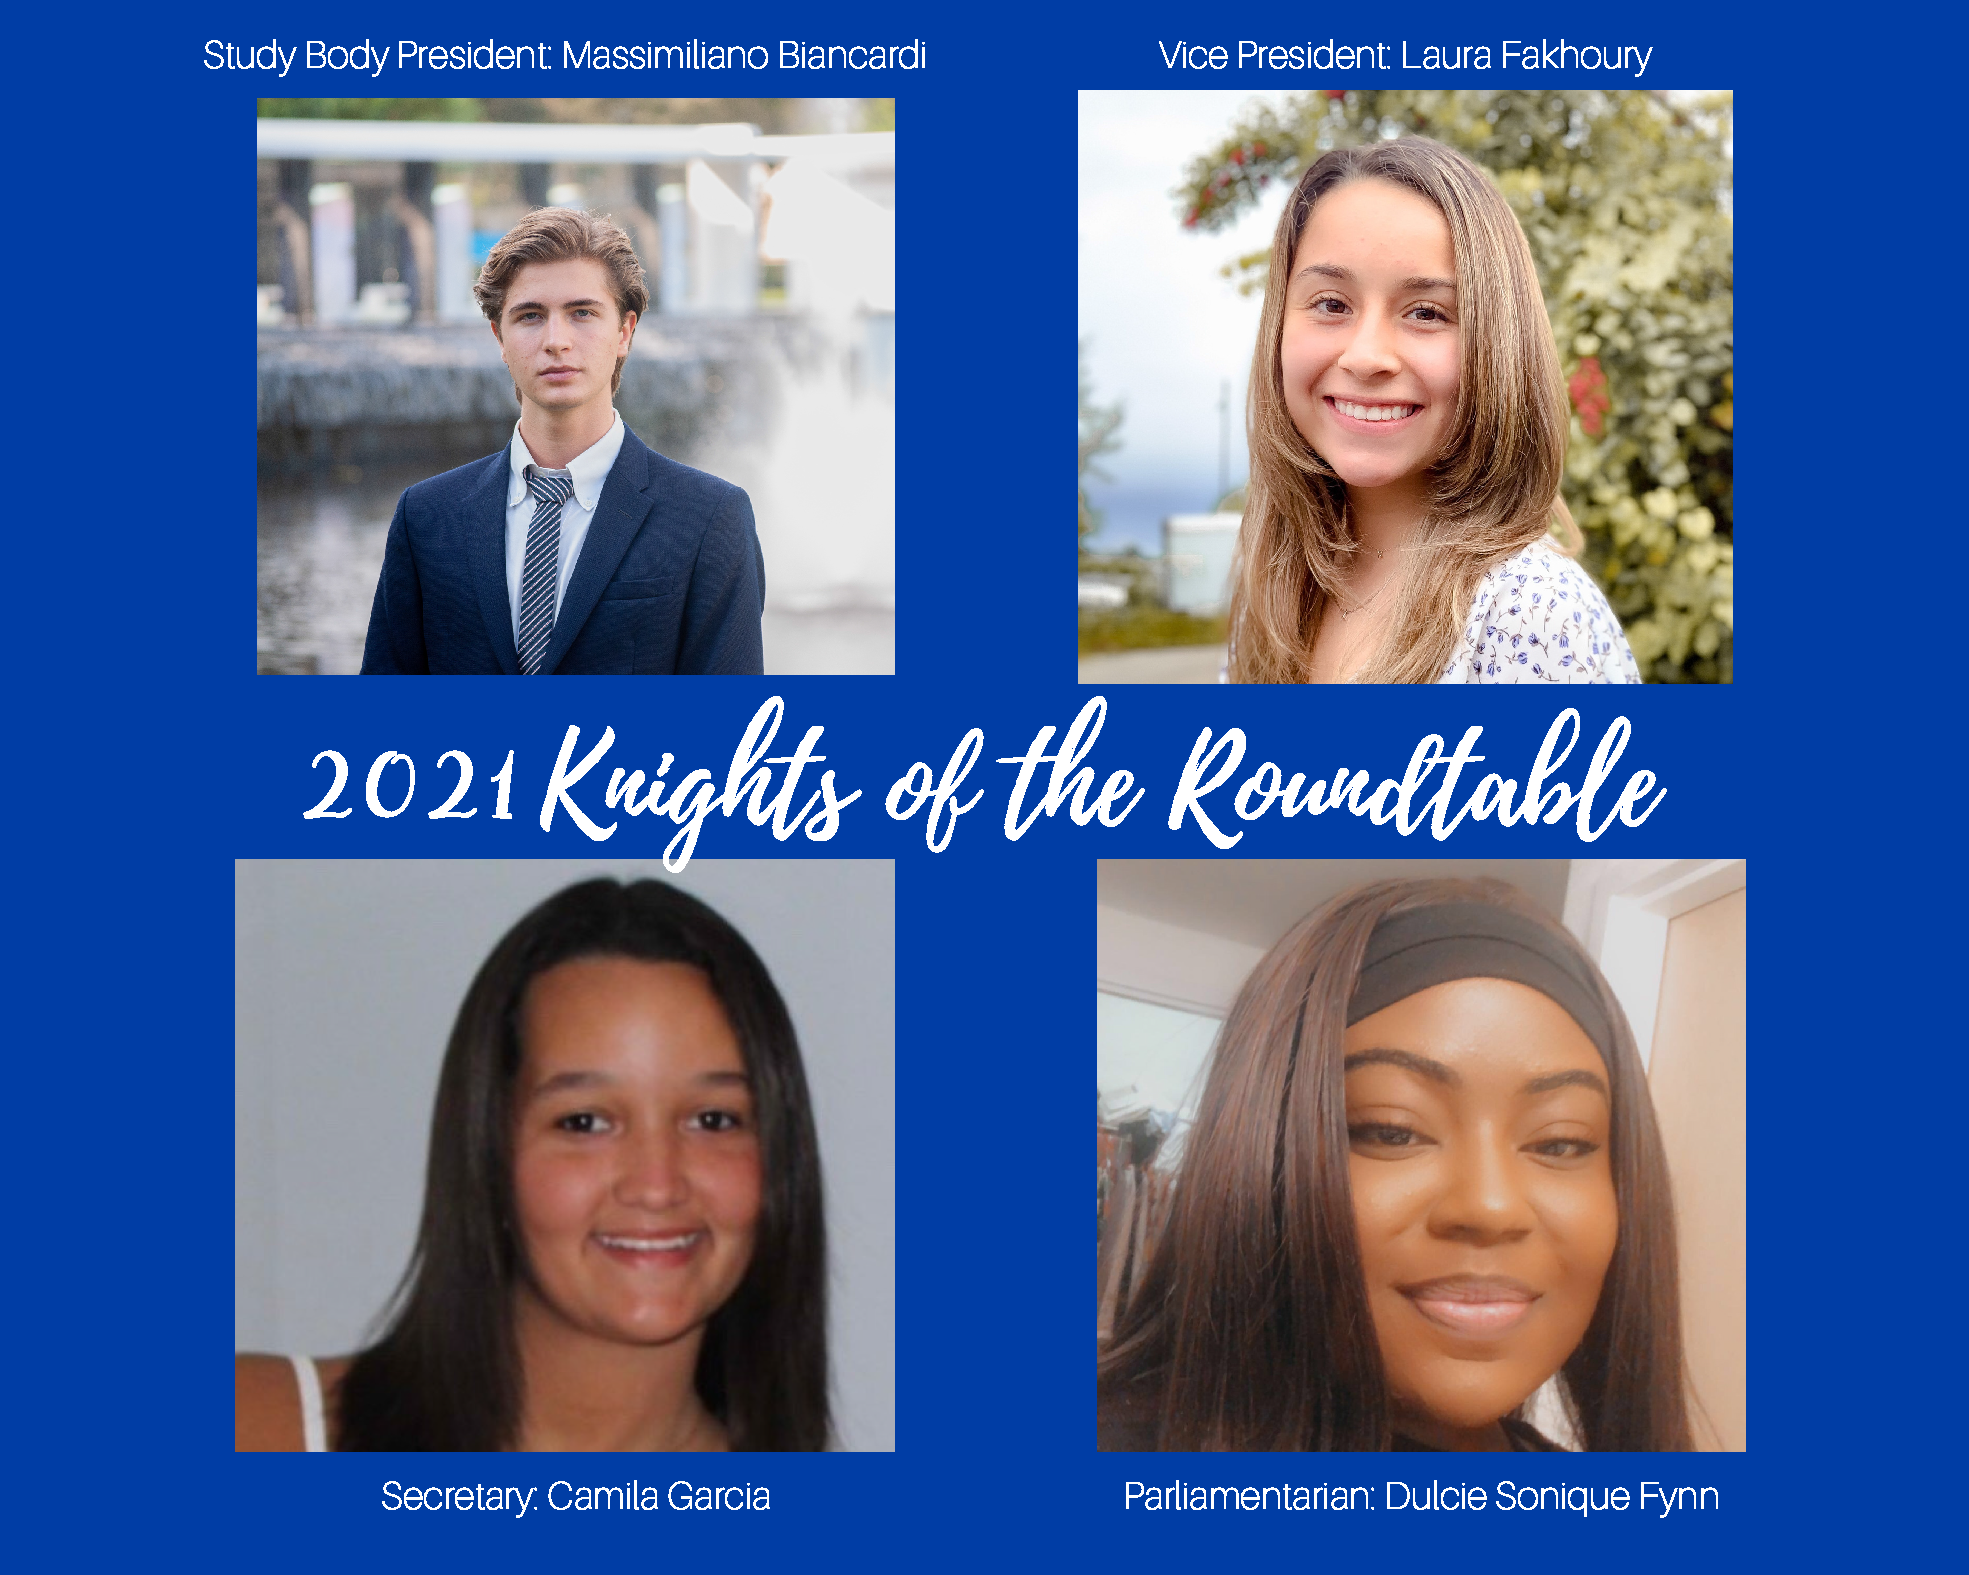 2021 Knights of the Roundtable